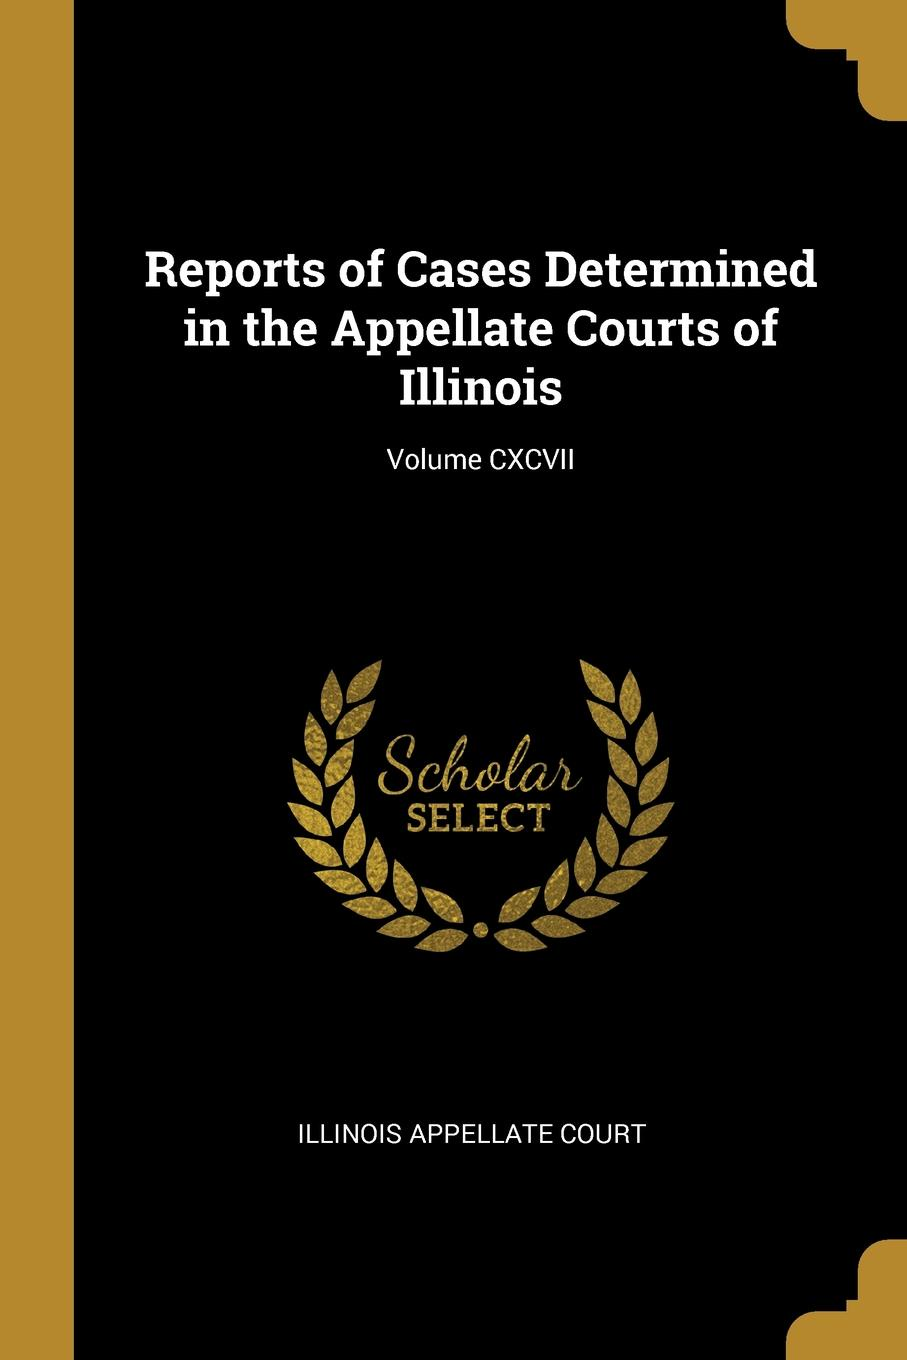 Illinois Appellate Court Reports of Cases Determined in the Appellate Courts of Illinois; Volume CXCVII